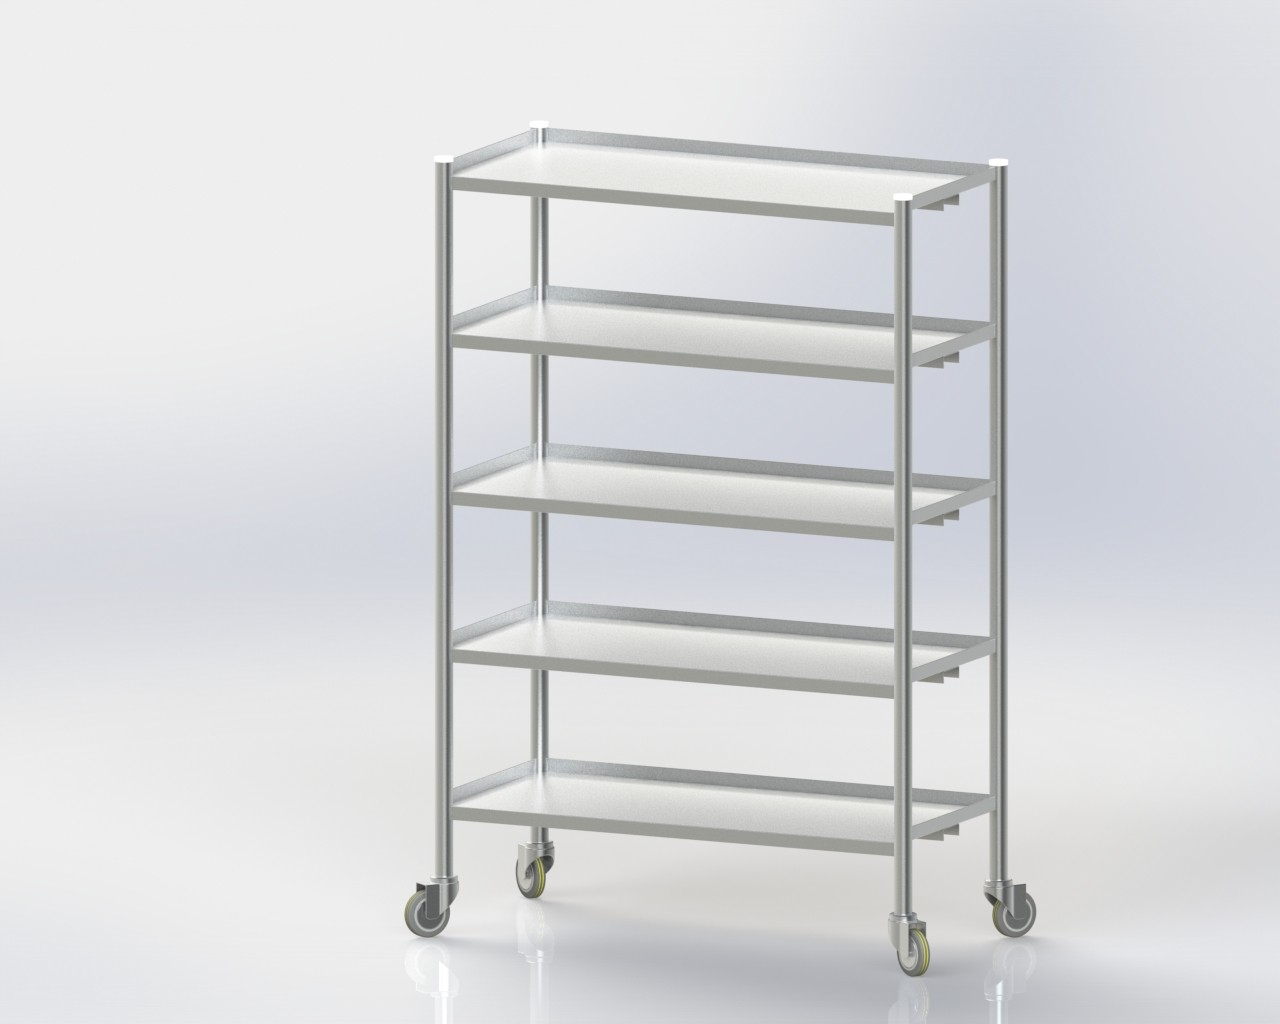 5 Storage Rack/standard/Mobile